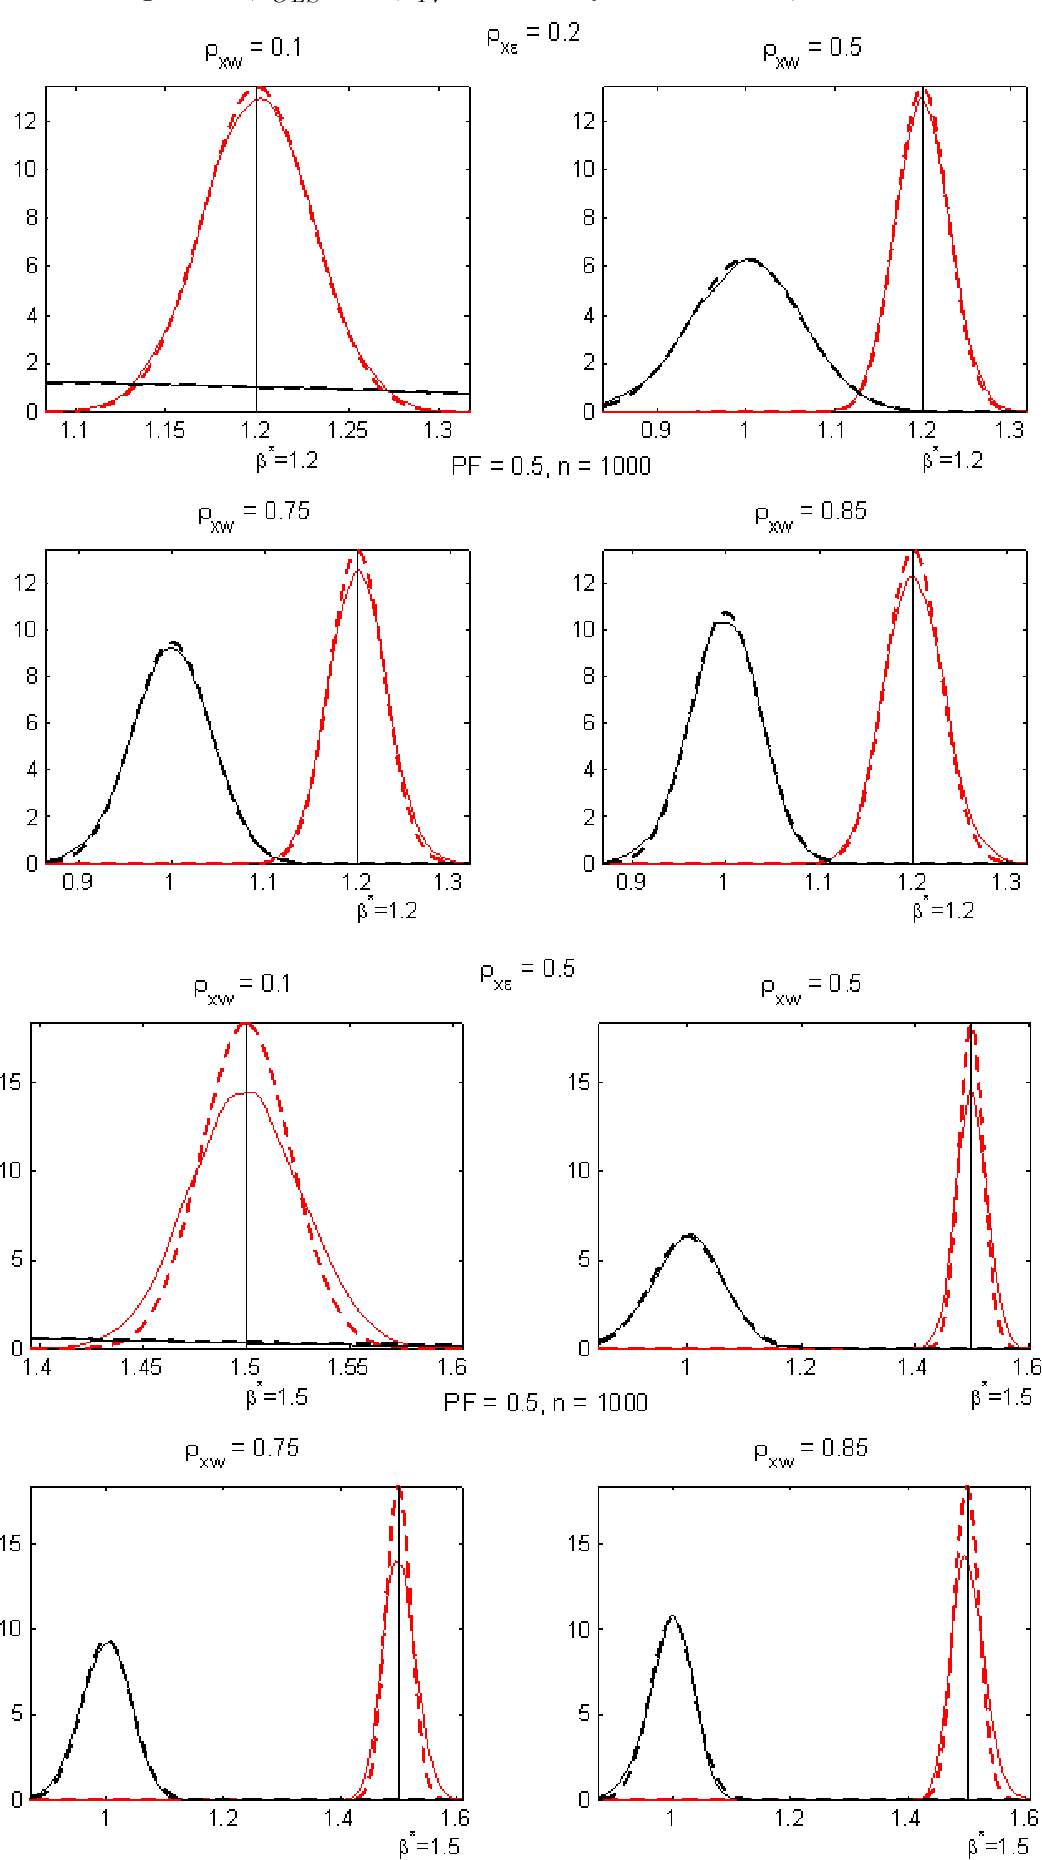 The asymptotic and finite sample distributions of OLS and